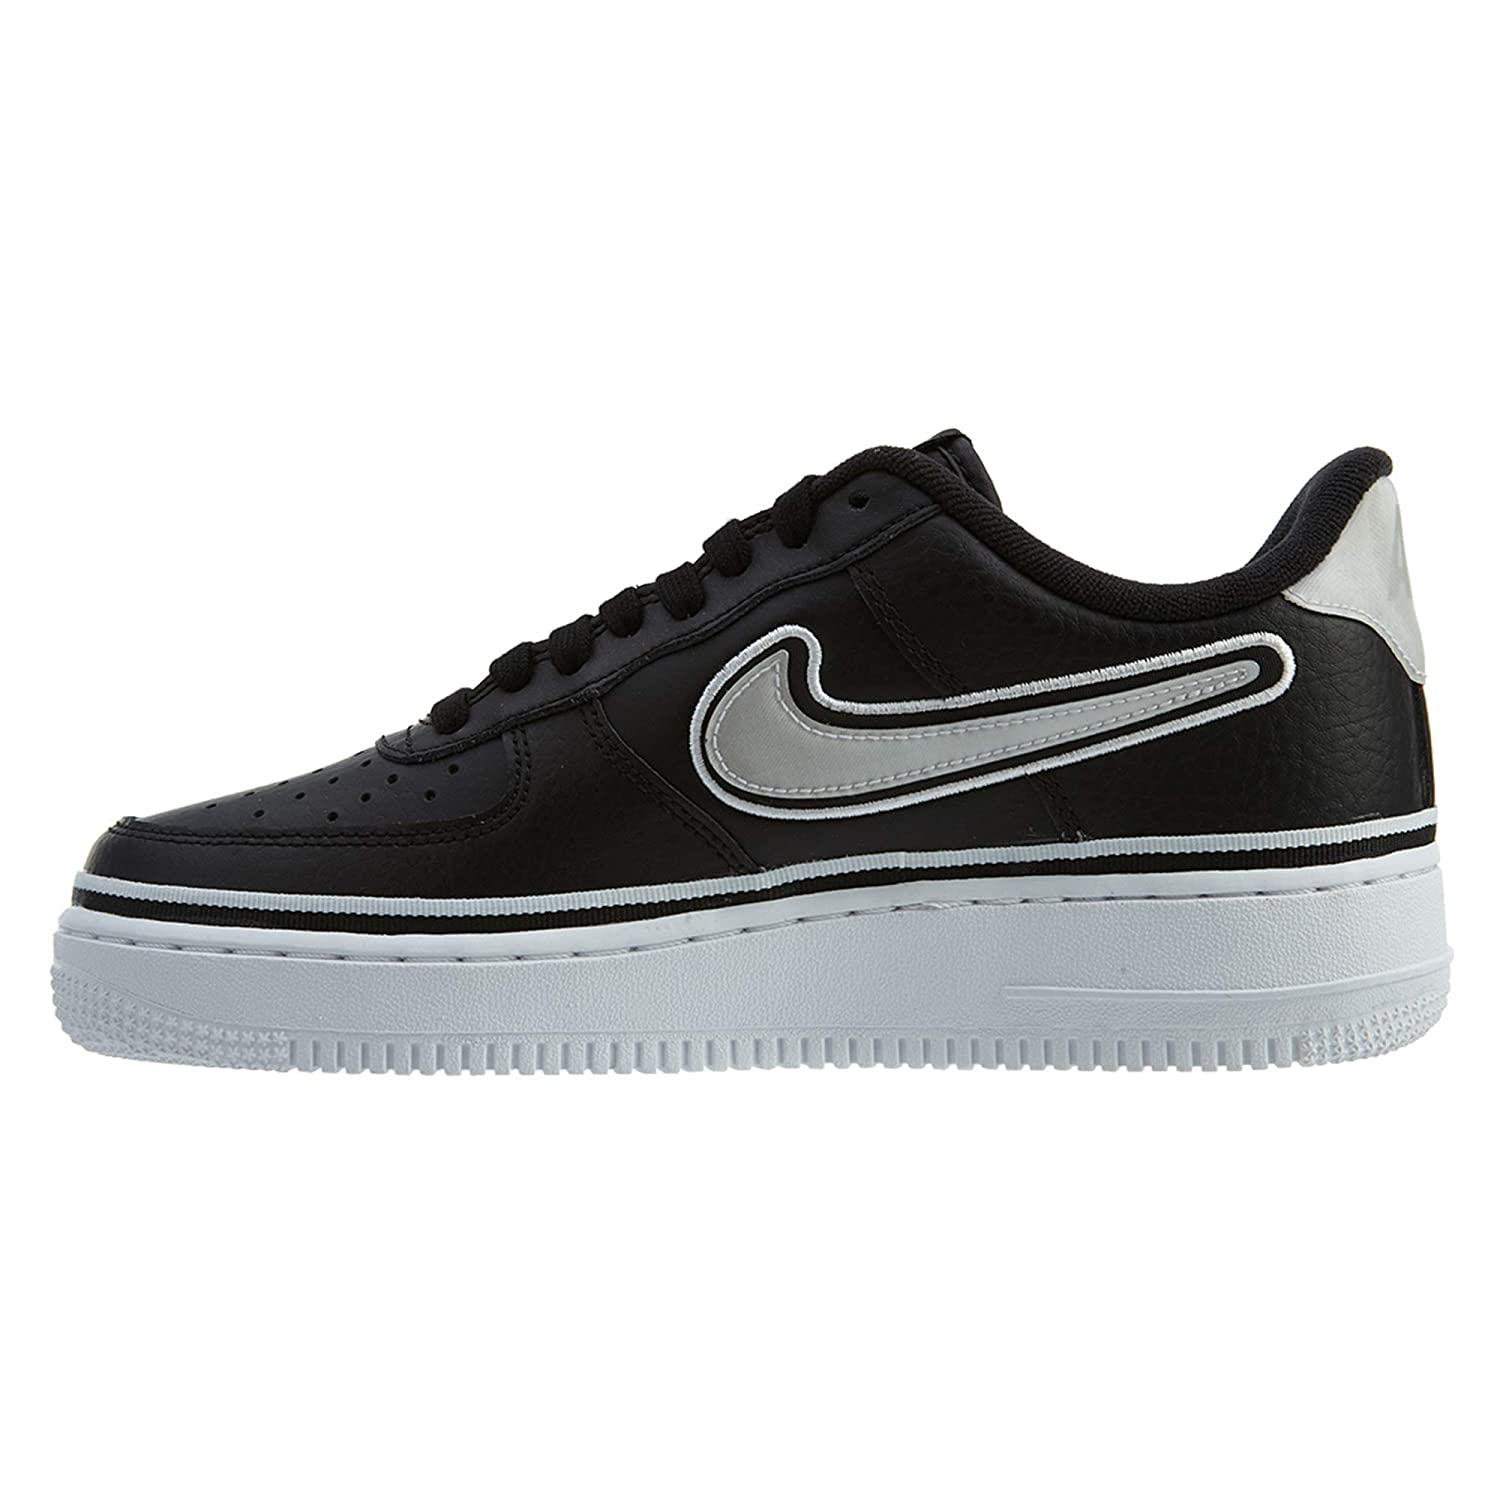 nouvelle arrivee 6e733 145ab Nike Air Force 1 07 LV8 Men's Shoes University Red/Universite Rogue  823511-601